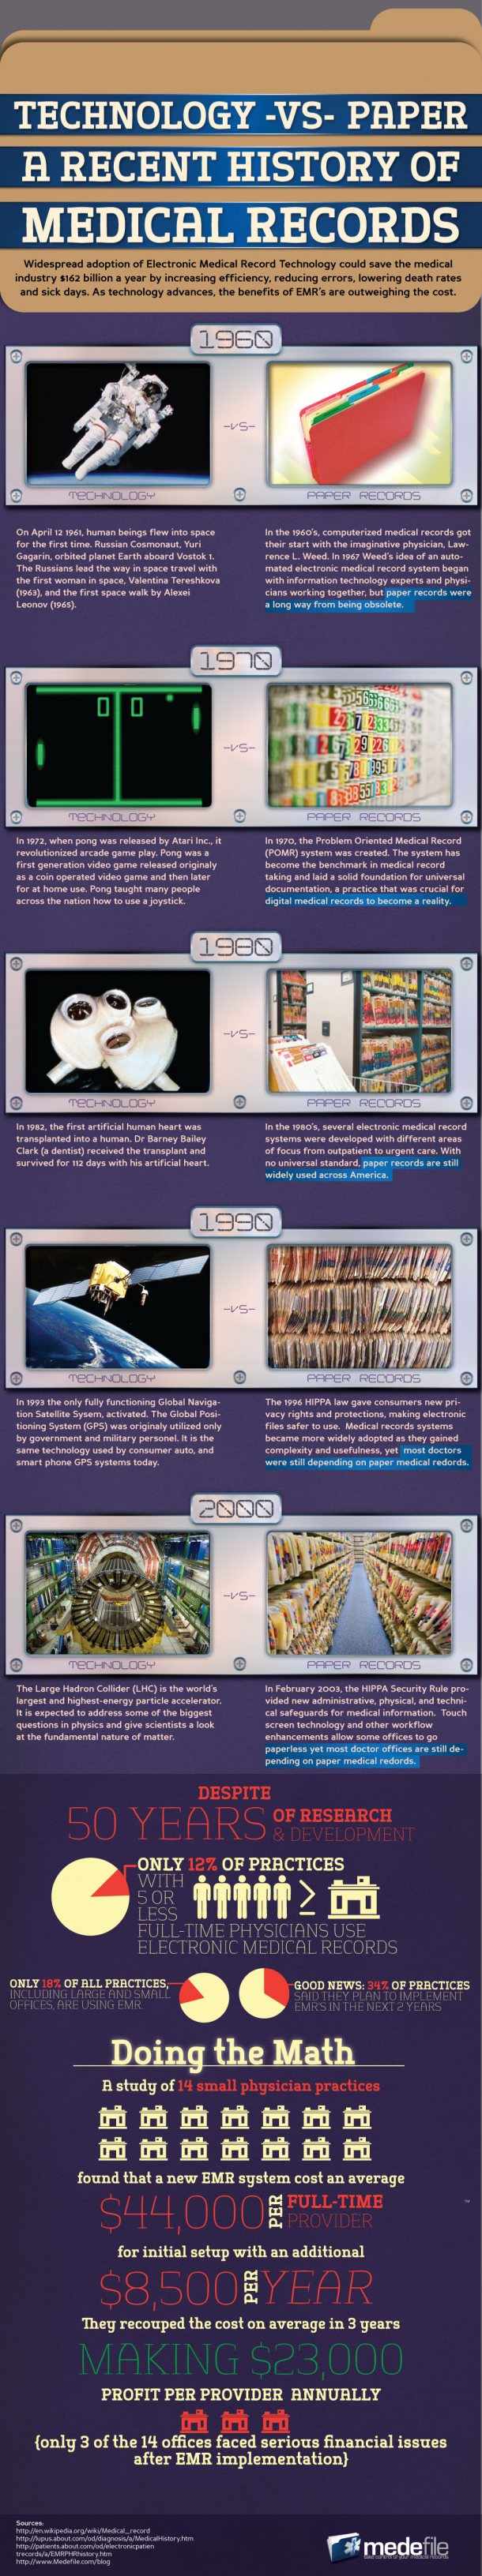 Technology Versus Paper A Recent History of Medical